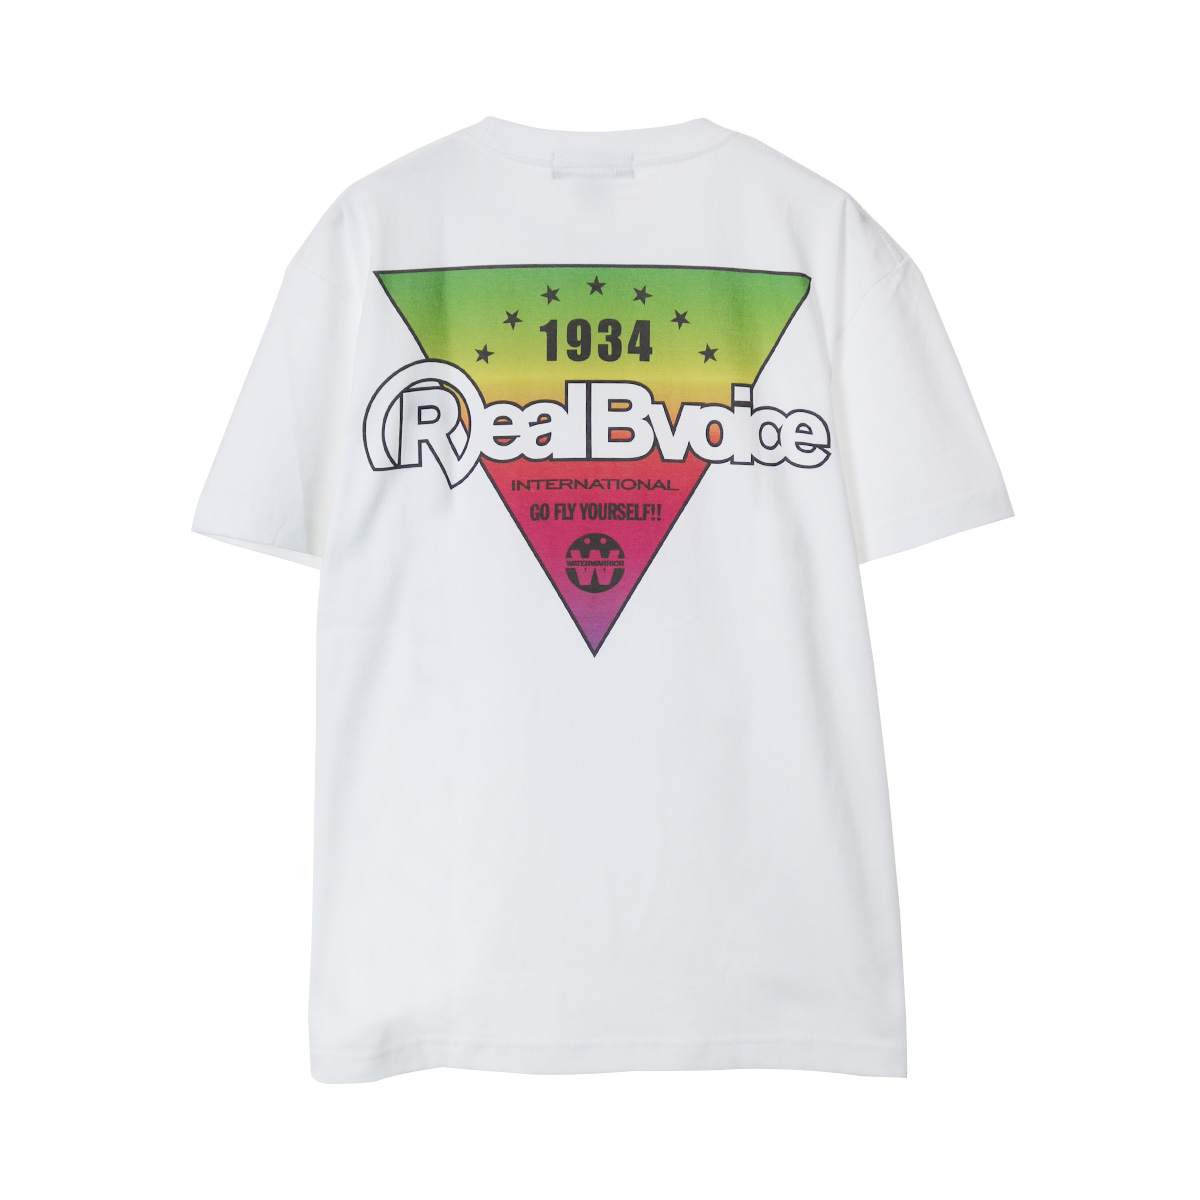 INVERTED TRIANGLE COTTON T-SHIRT